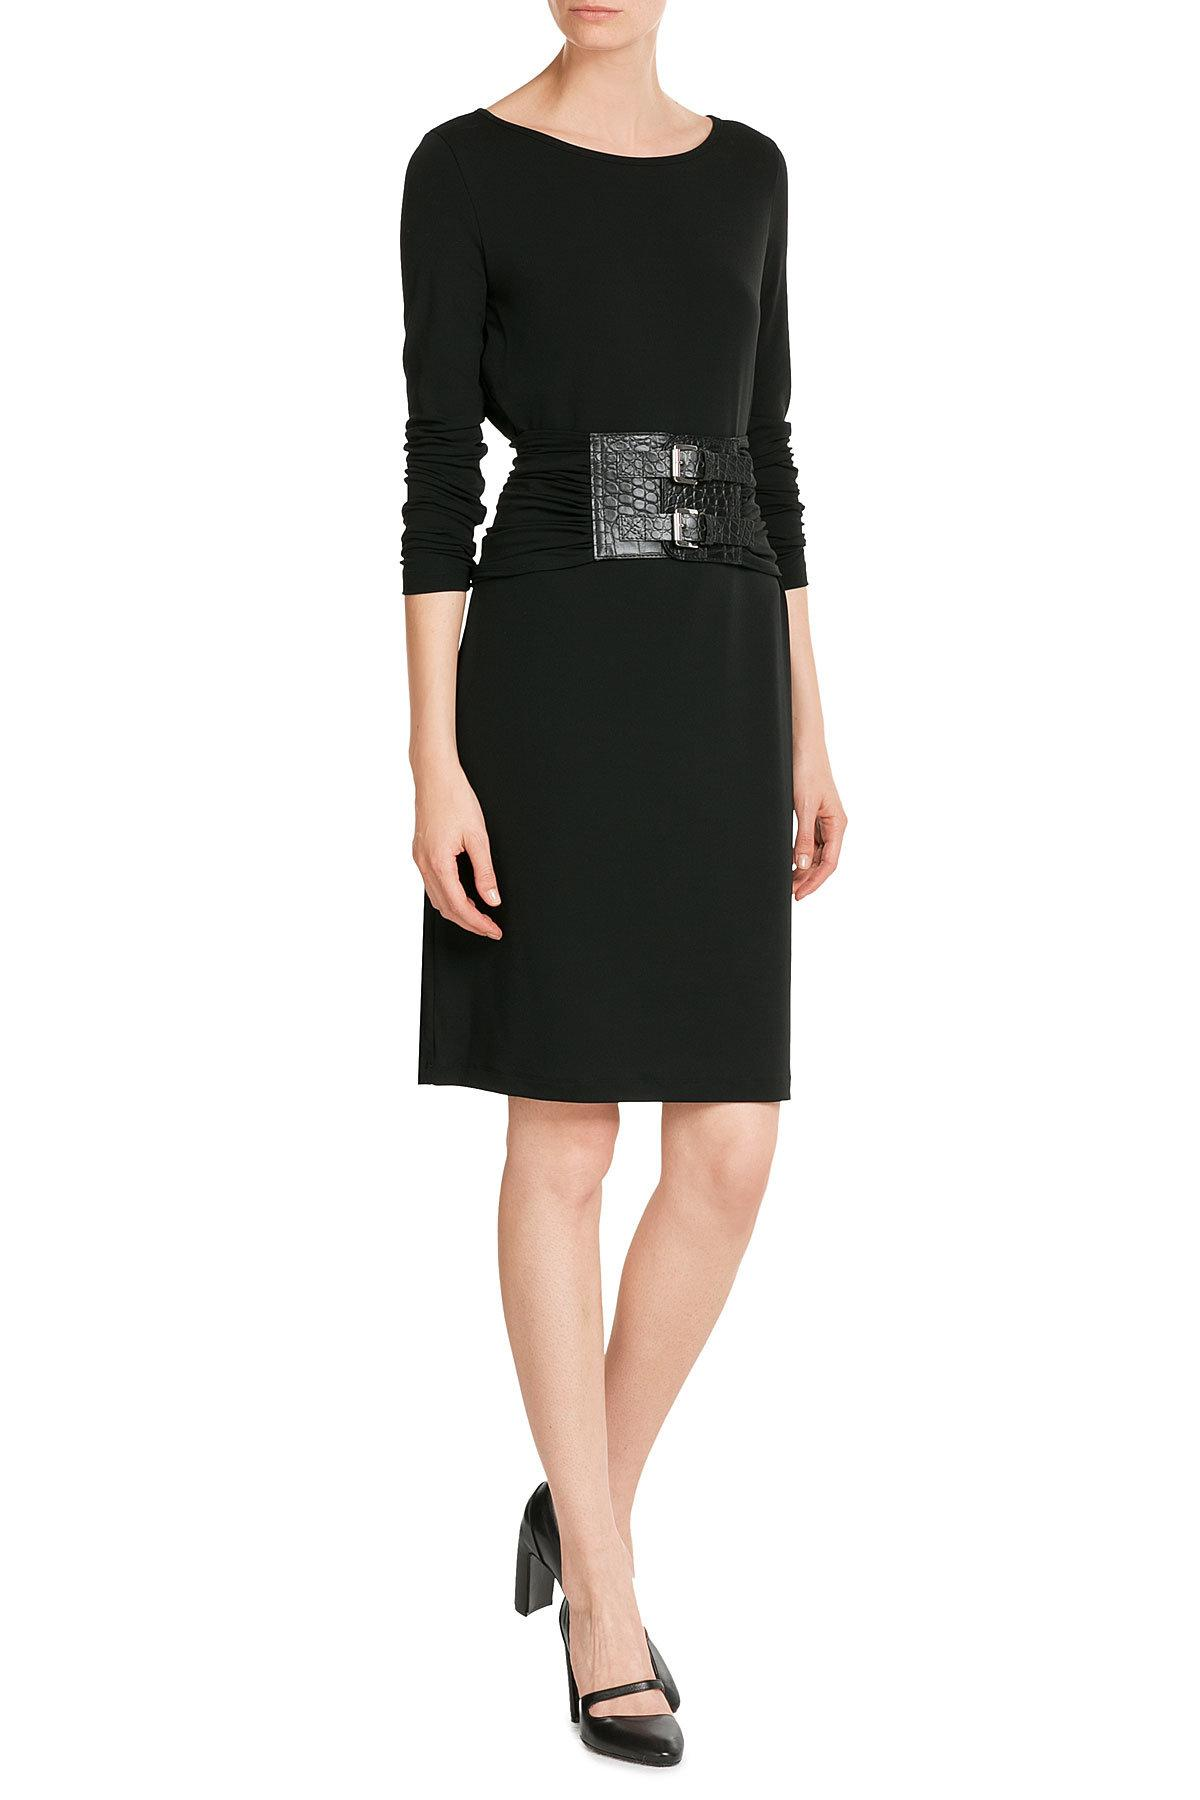 michael kors dress with leather belt in black lyst